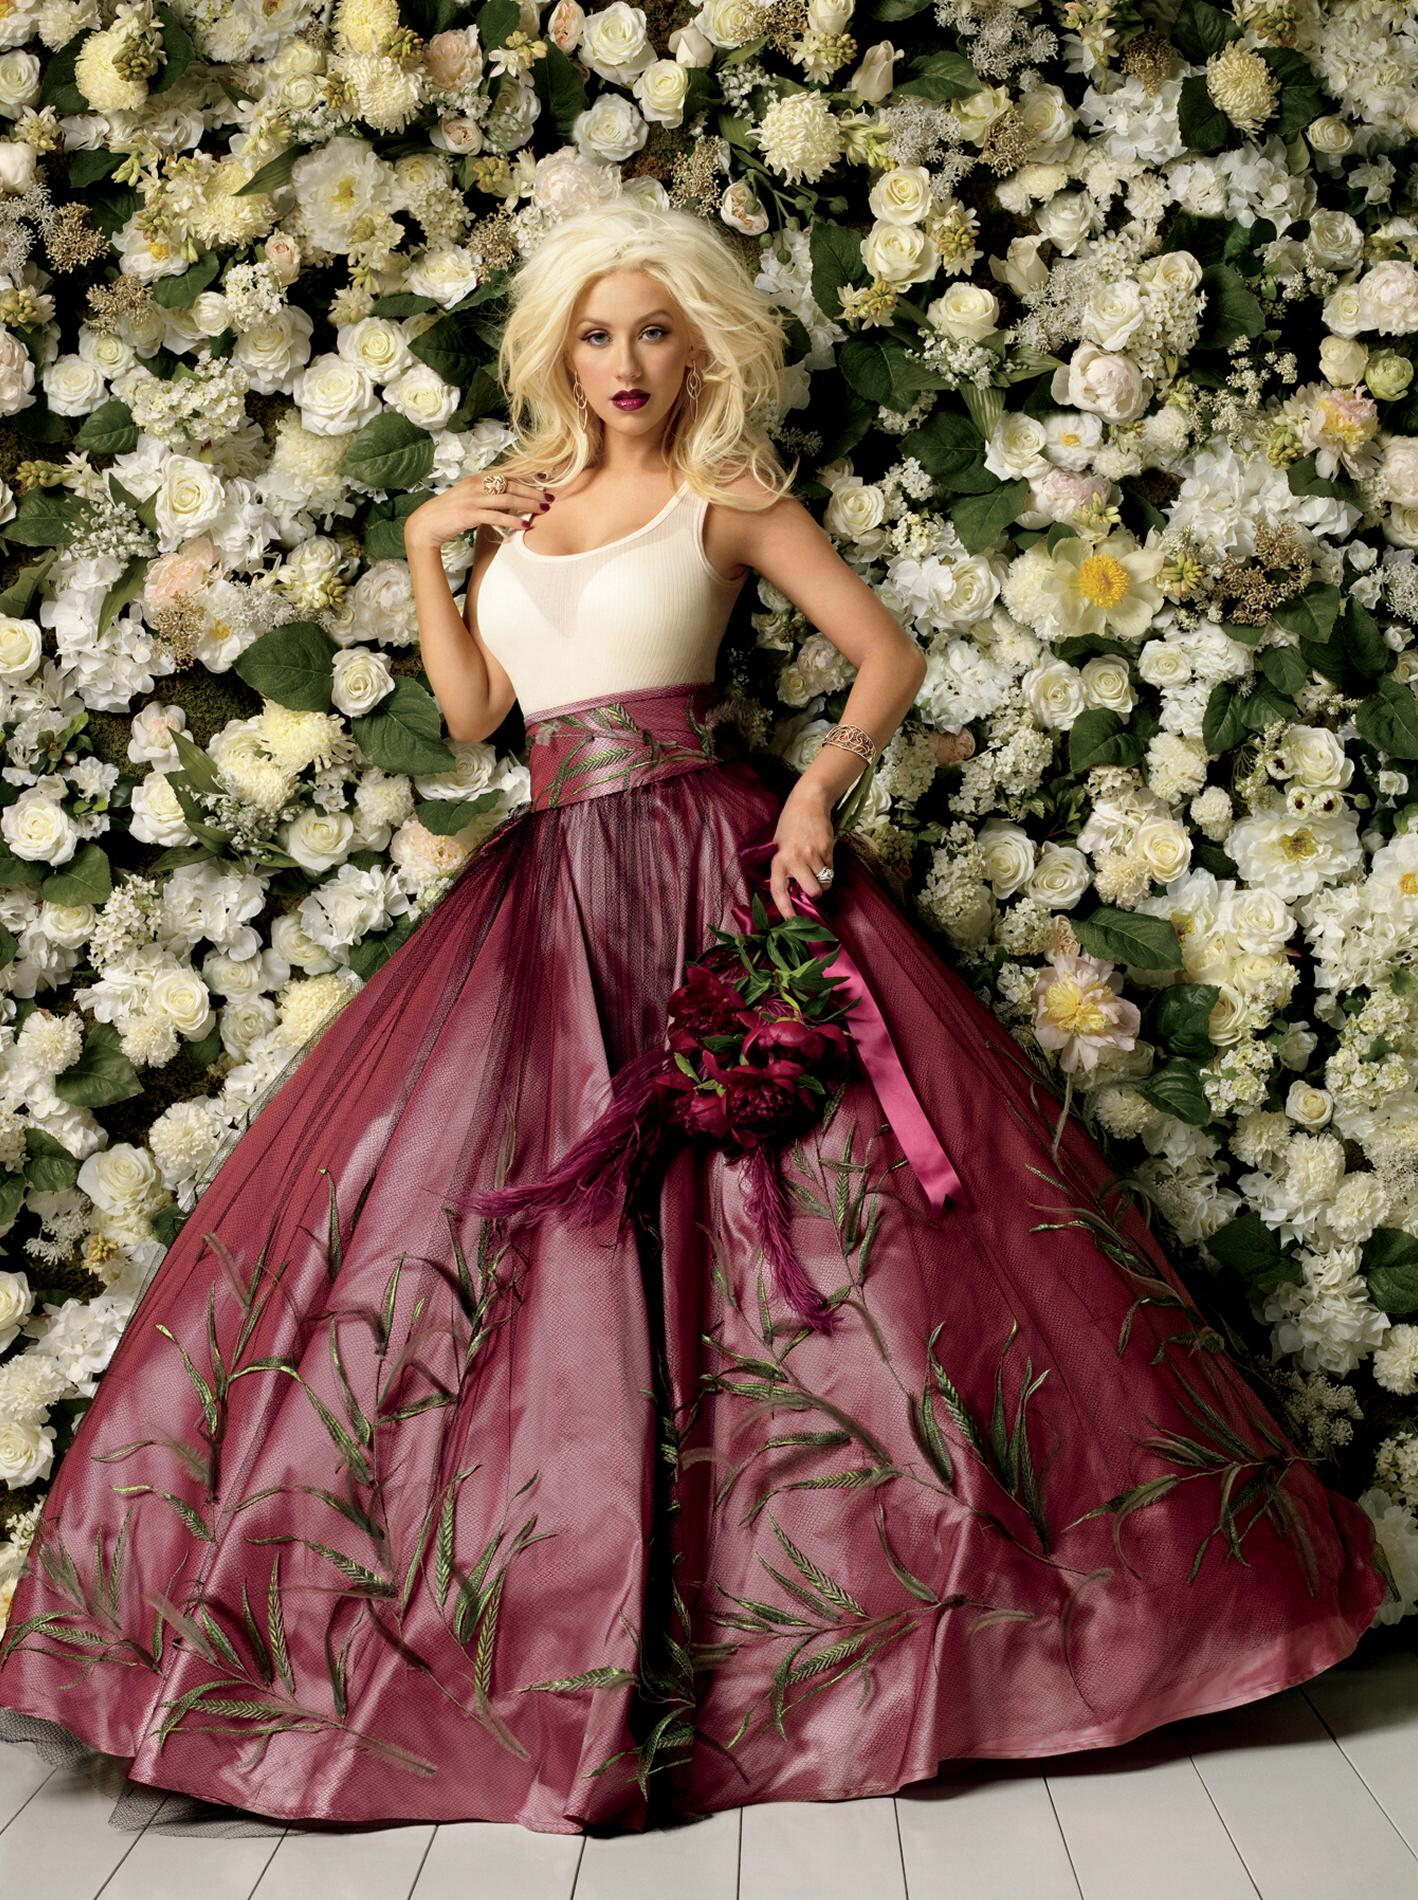 02778_Christina_Aguilera-010844_Mark_Seliger_-_Macy63s_ads_-_2008_122_970lo.jpg